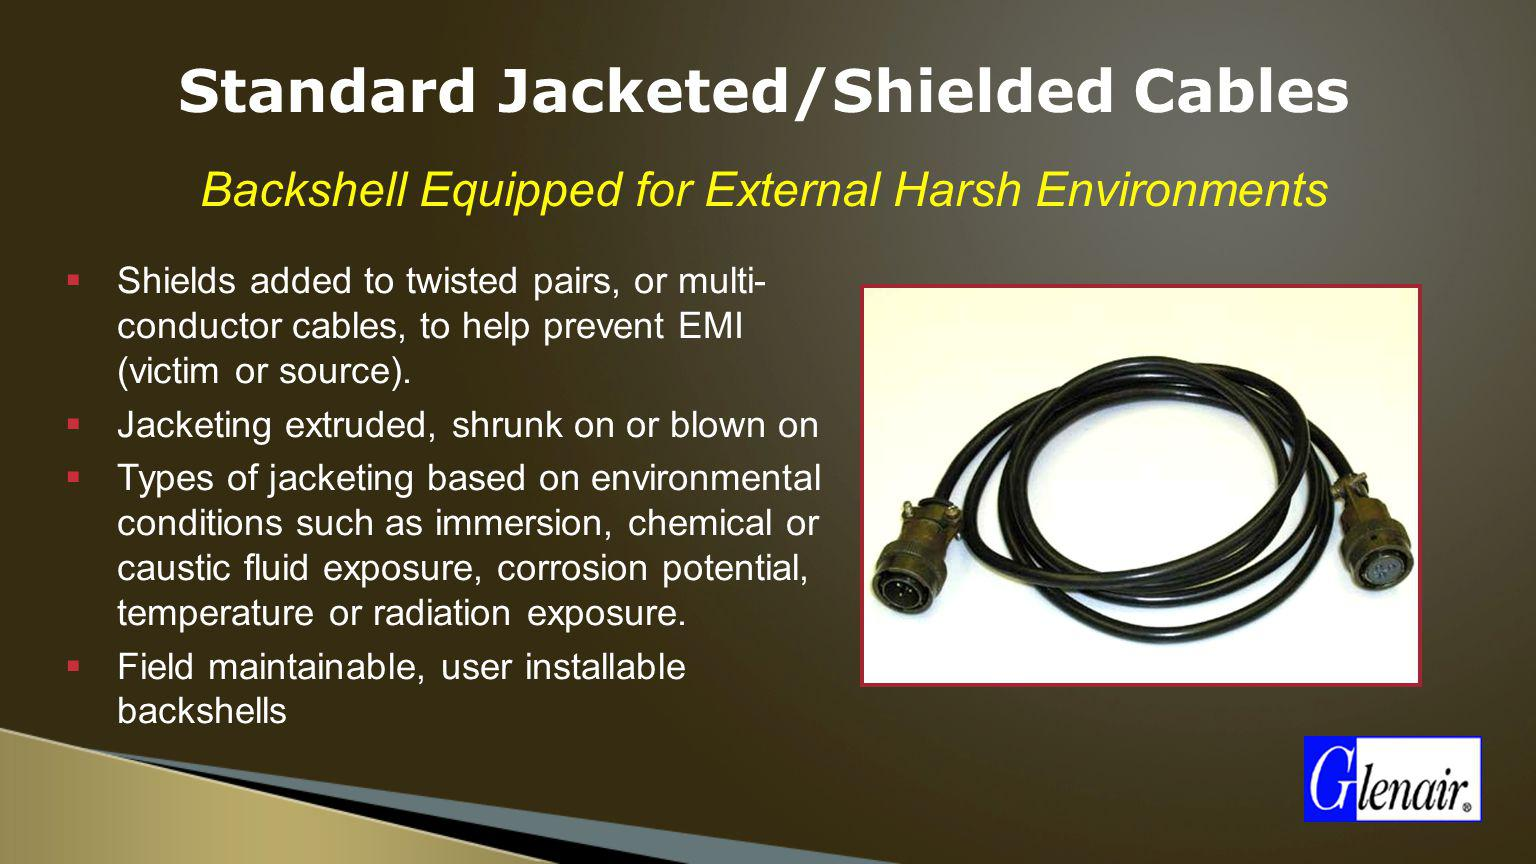 Standard Jacketed/Shielded Cables